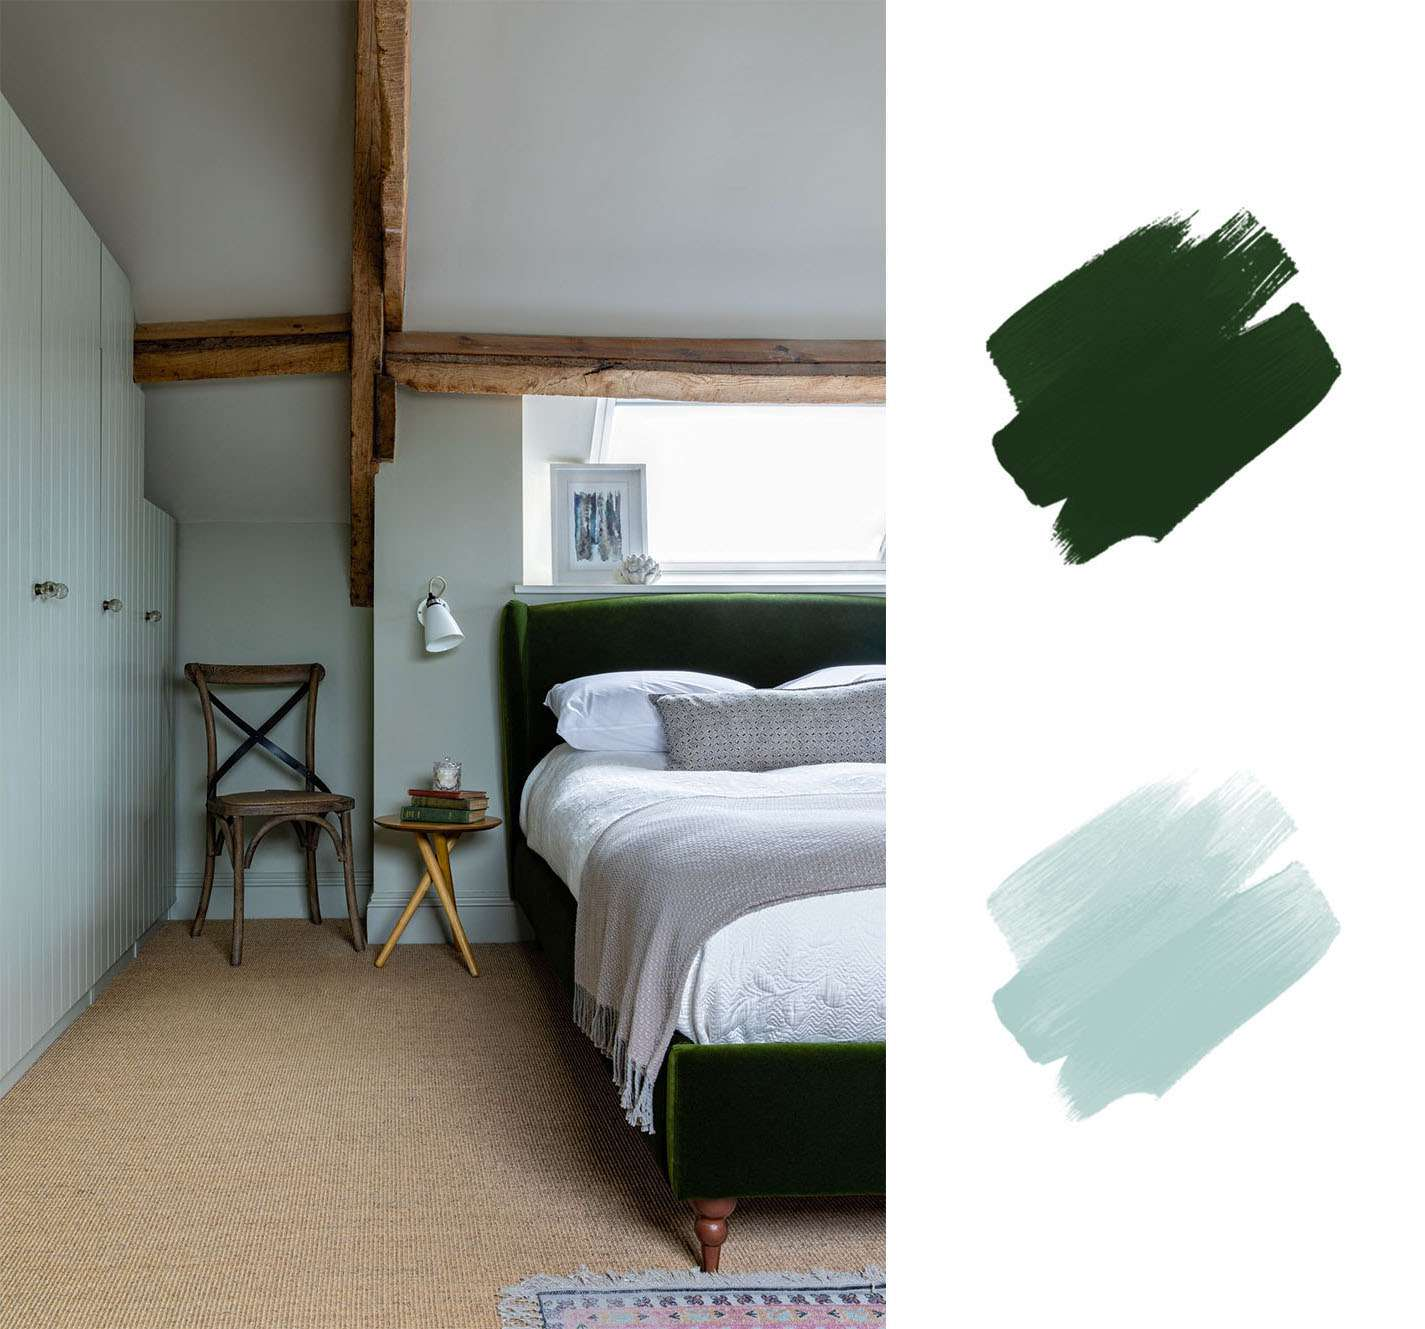 best interior color schemes - emerald green and light blue